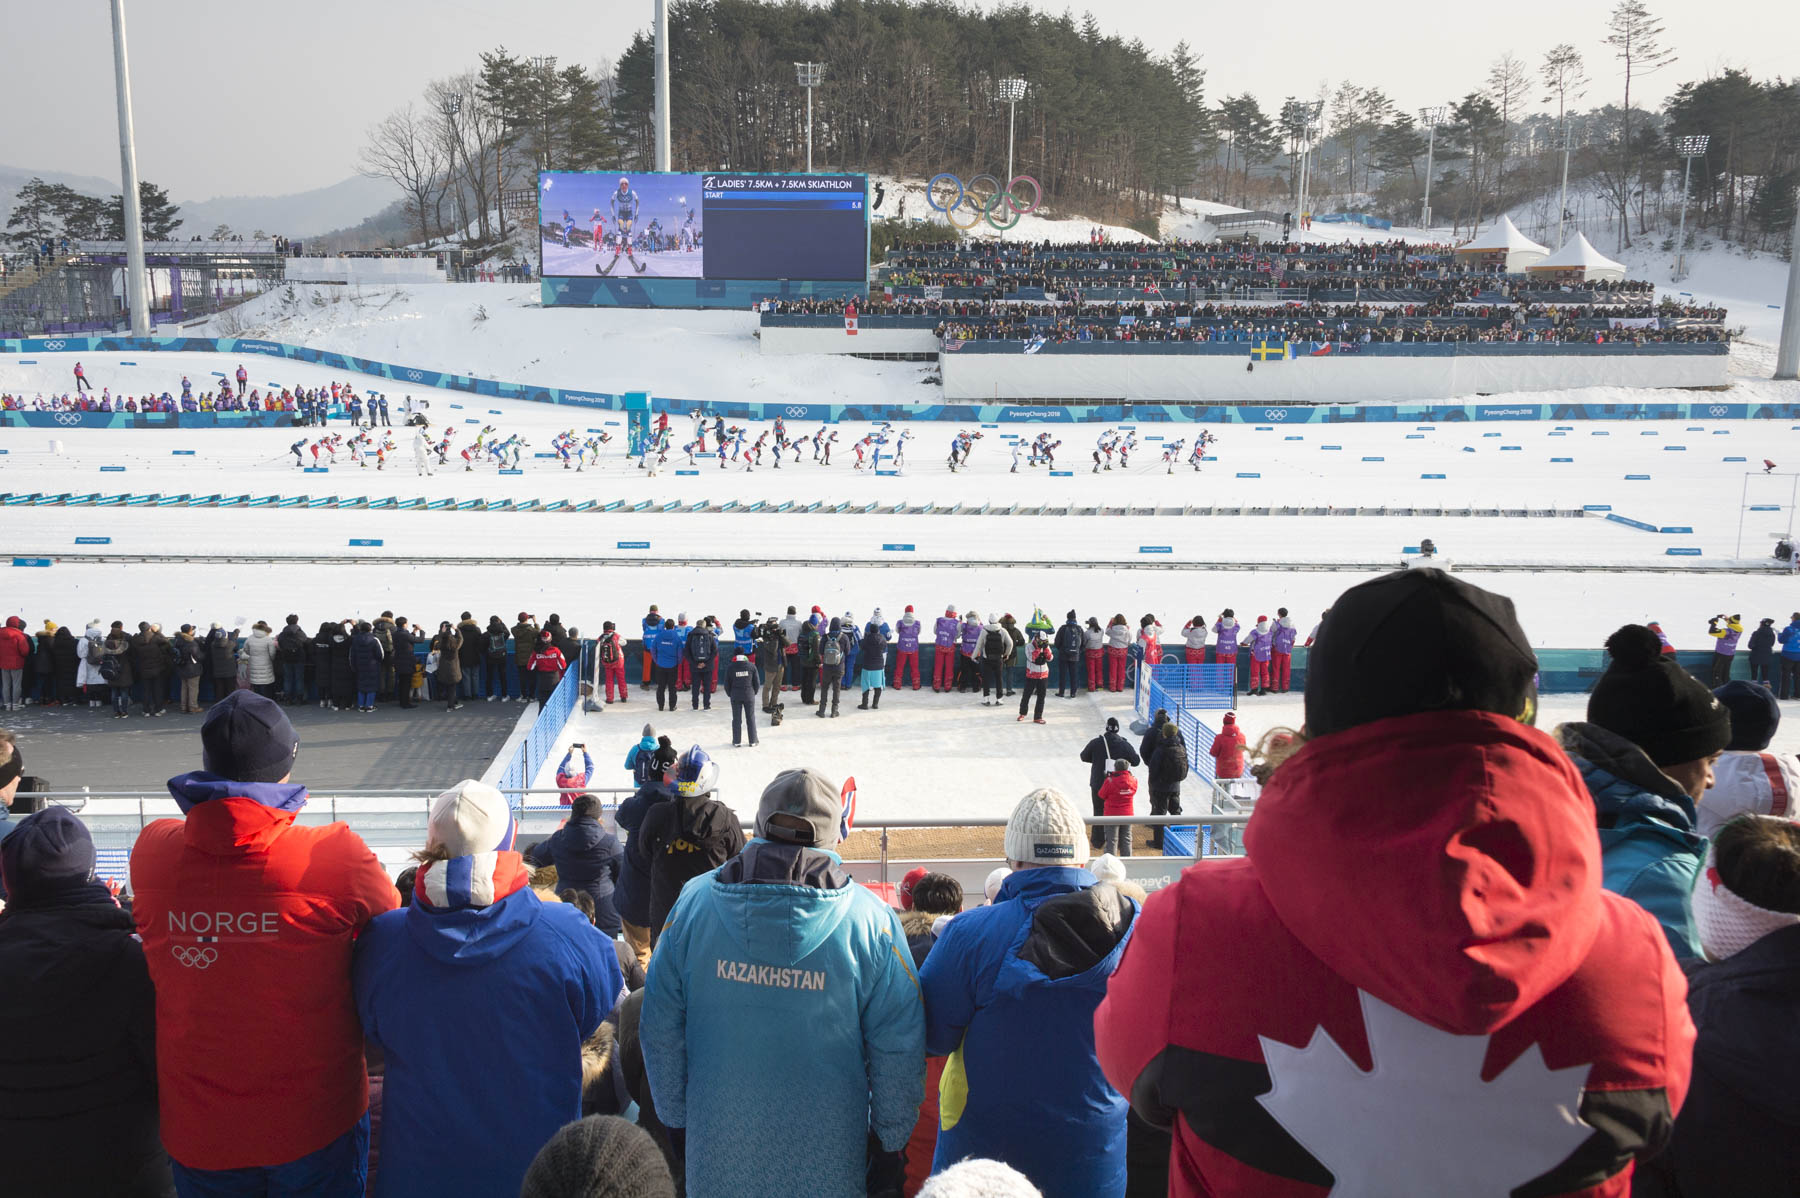 She then headed to the 7.5-kilometre skiathlon race to watch our Canadian athletes Cendrine Browne, Emily, Nishikawa, Anne-Marie Comeau and Dahria Beatty perform.